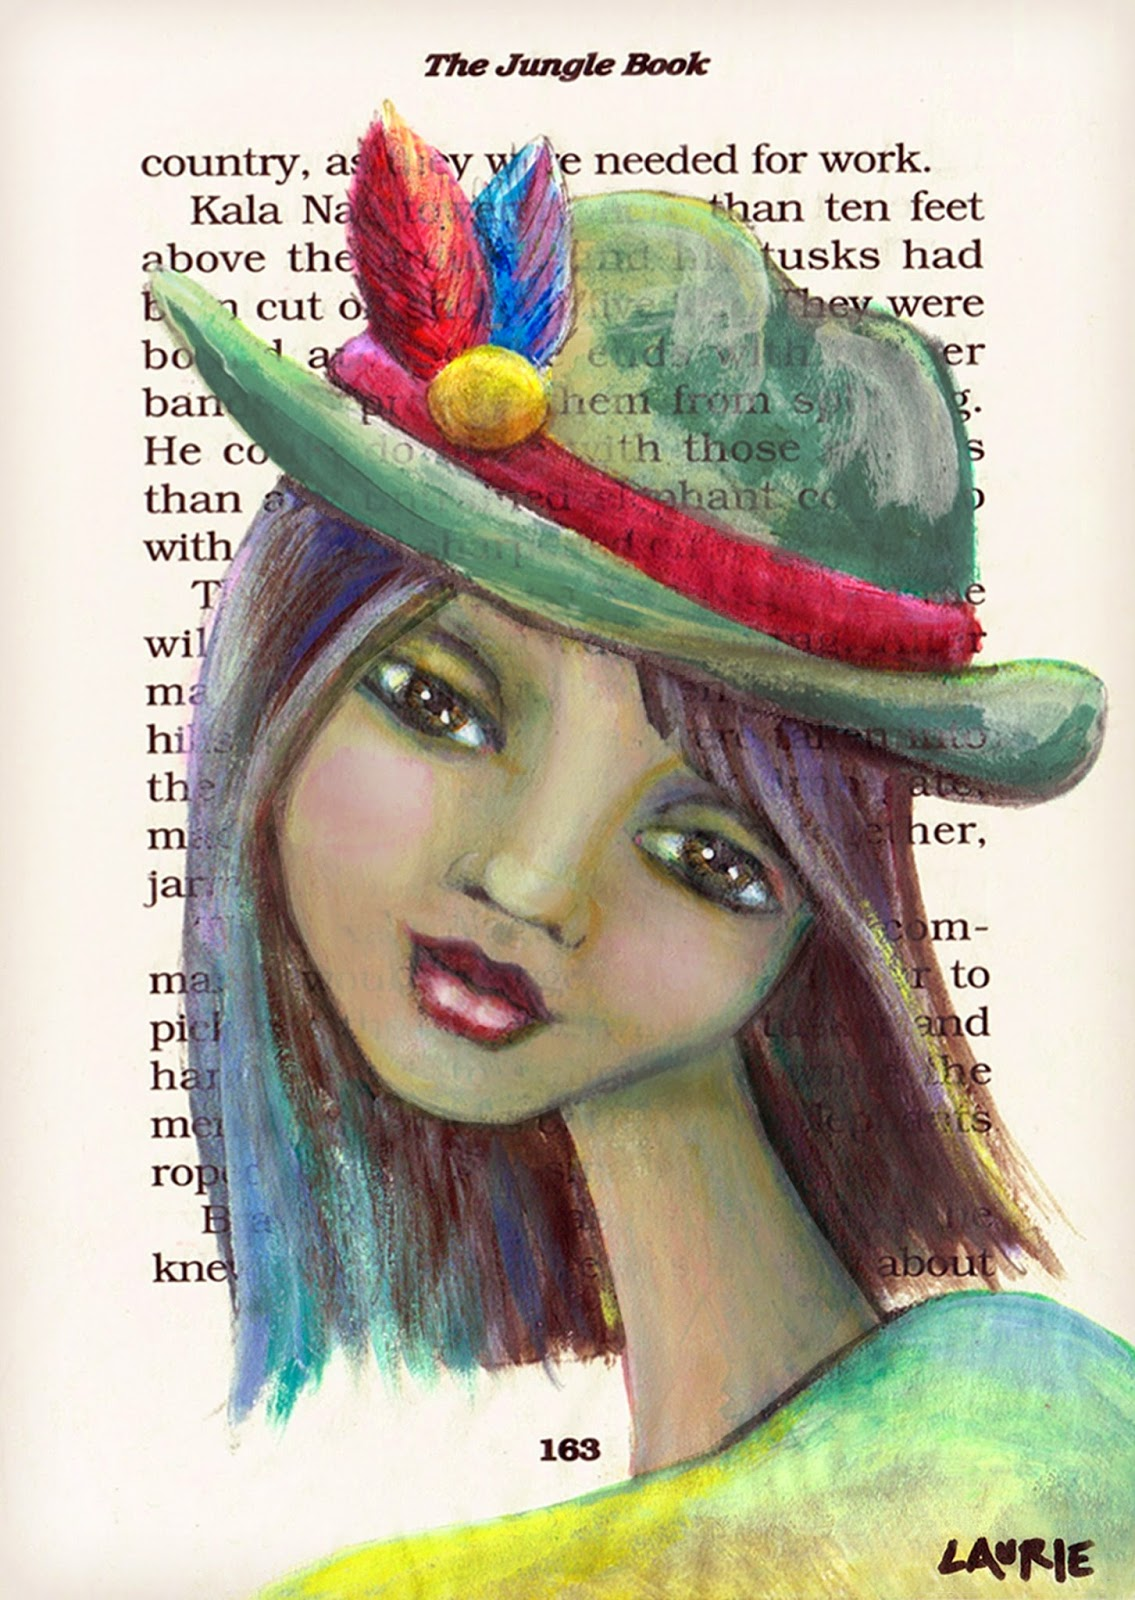 Whimsical Indian Girl Art